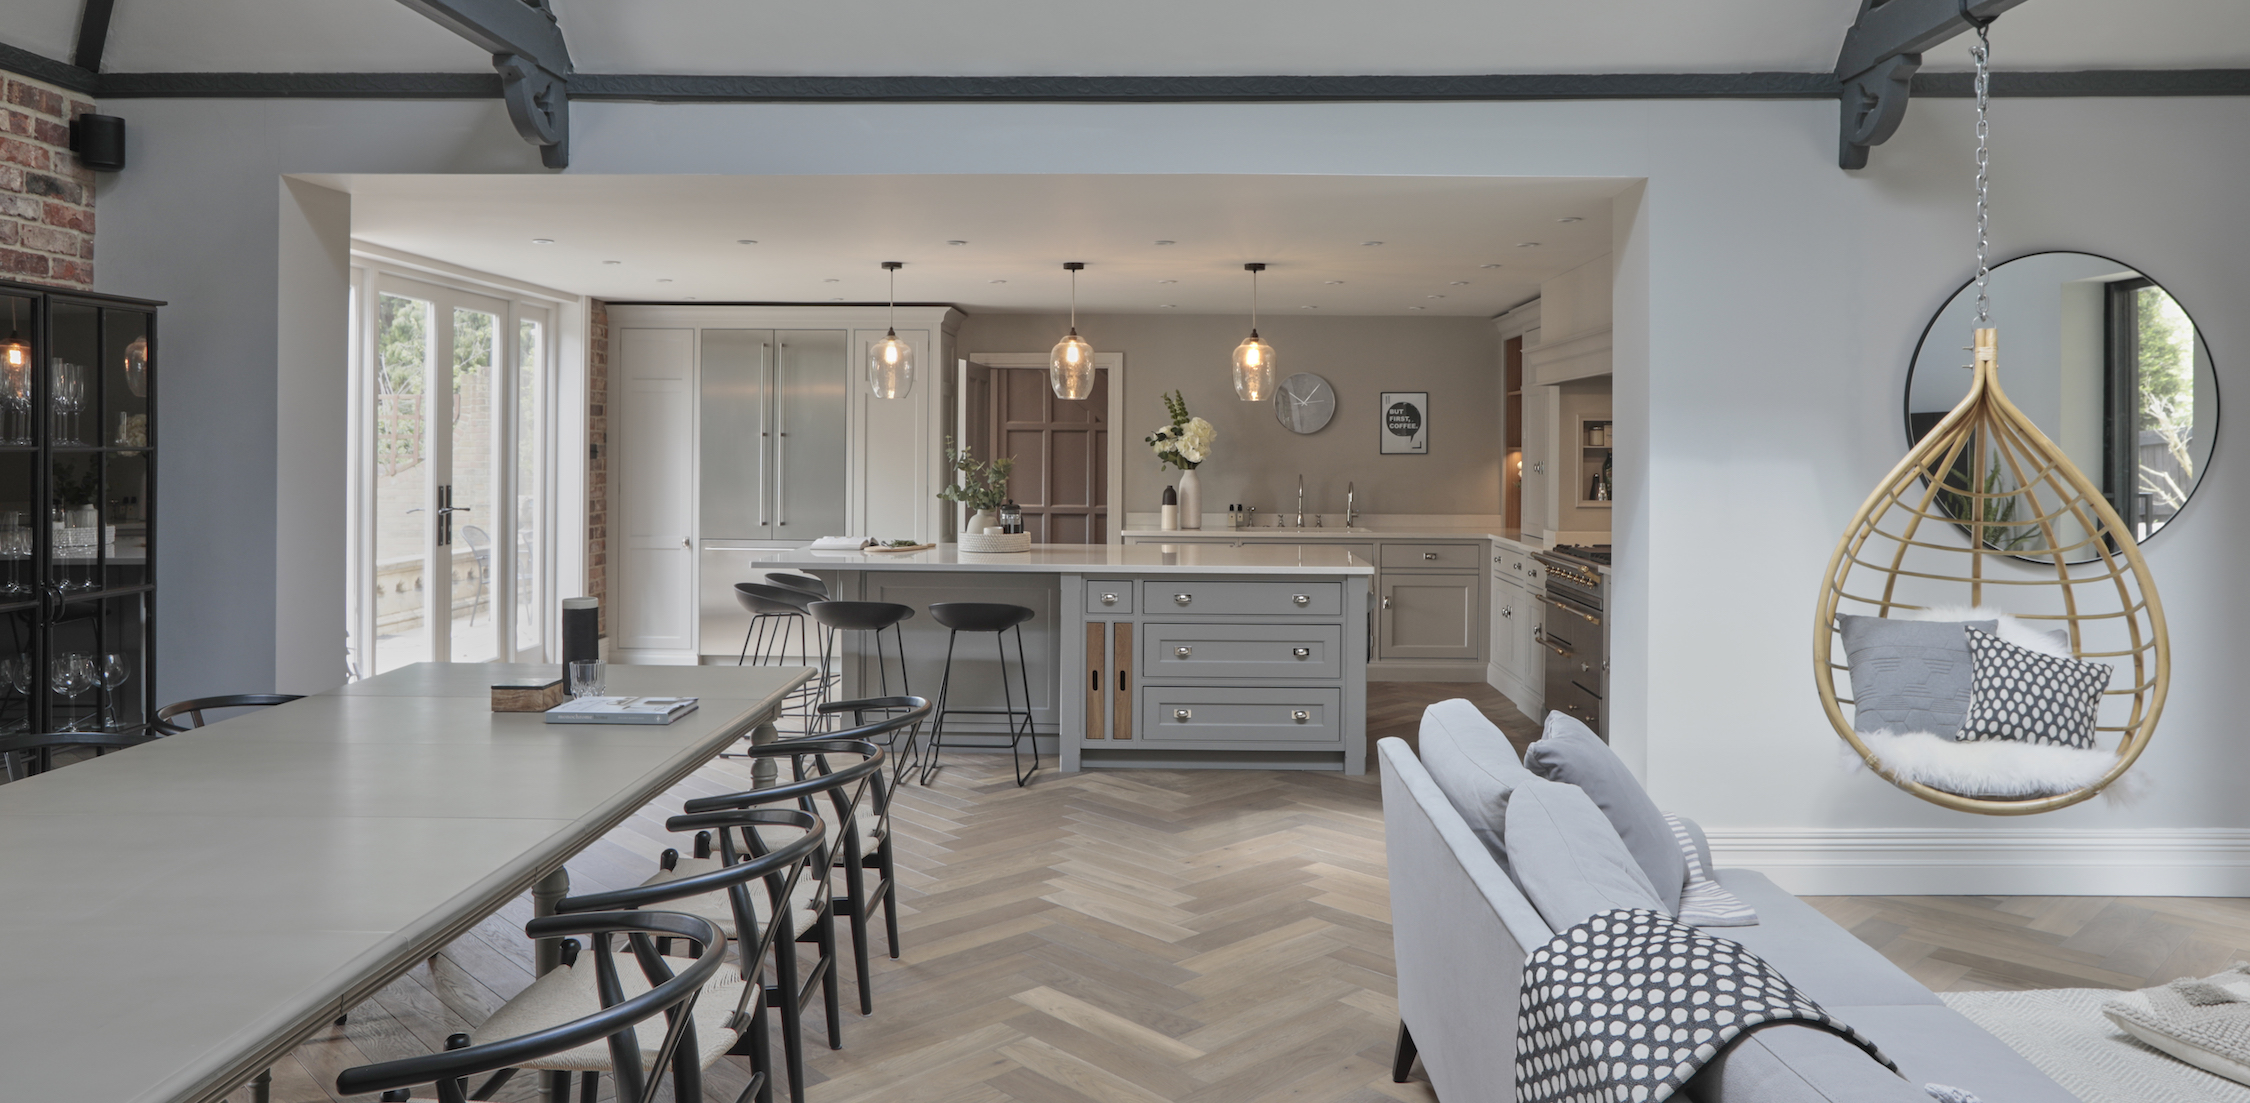 The Open Plan Living And Dining Areas Were Designed By Cherie Lee Interiors An Interior Design Consultancy Based In Hertfordshire London